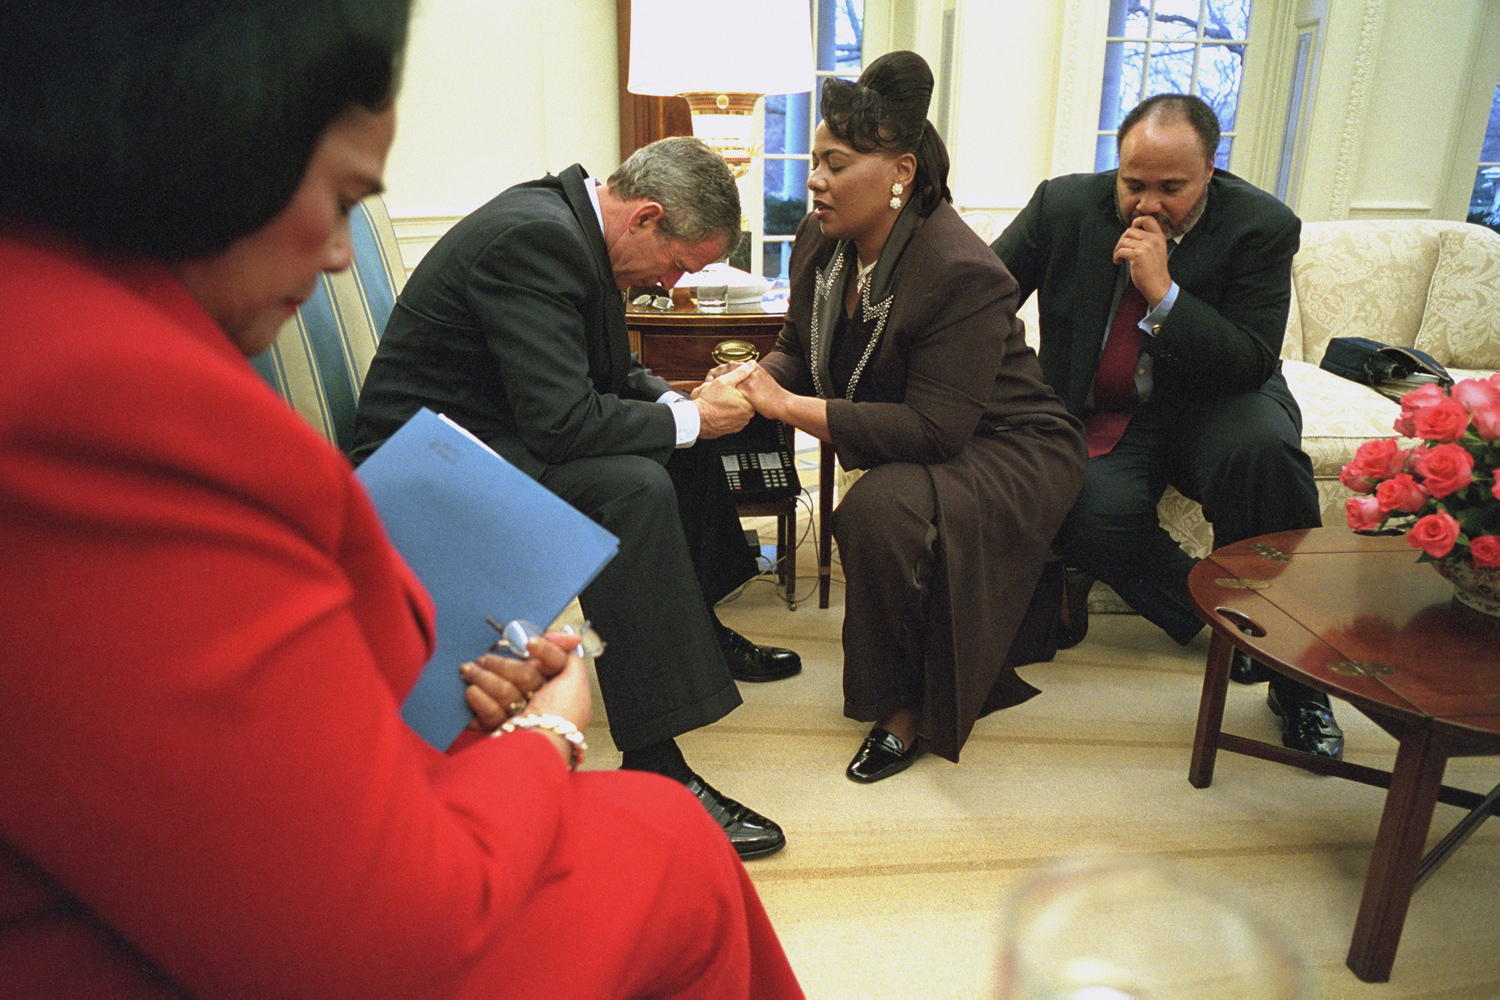 "July 27, 2006. Coretta Scott King, left, holds the plans for the Martin Luther King Memorial in her arms as President Bush joins in prayer with Bernice King and Martin Luther King III during their visit to the Oval Office.""Coretta Scott King asked the president to pray with them and he did. It was touching to see how instantly intimate they were, joining hands to pray. After the meeting, I escorted Coretta Scott King down to the library where her husband's bust was and she asked me to photograph her. It was such an honor."""